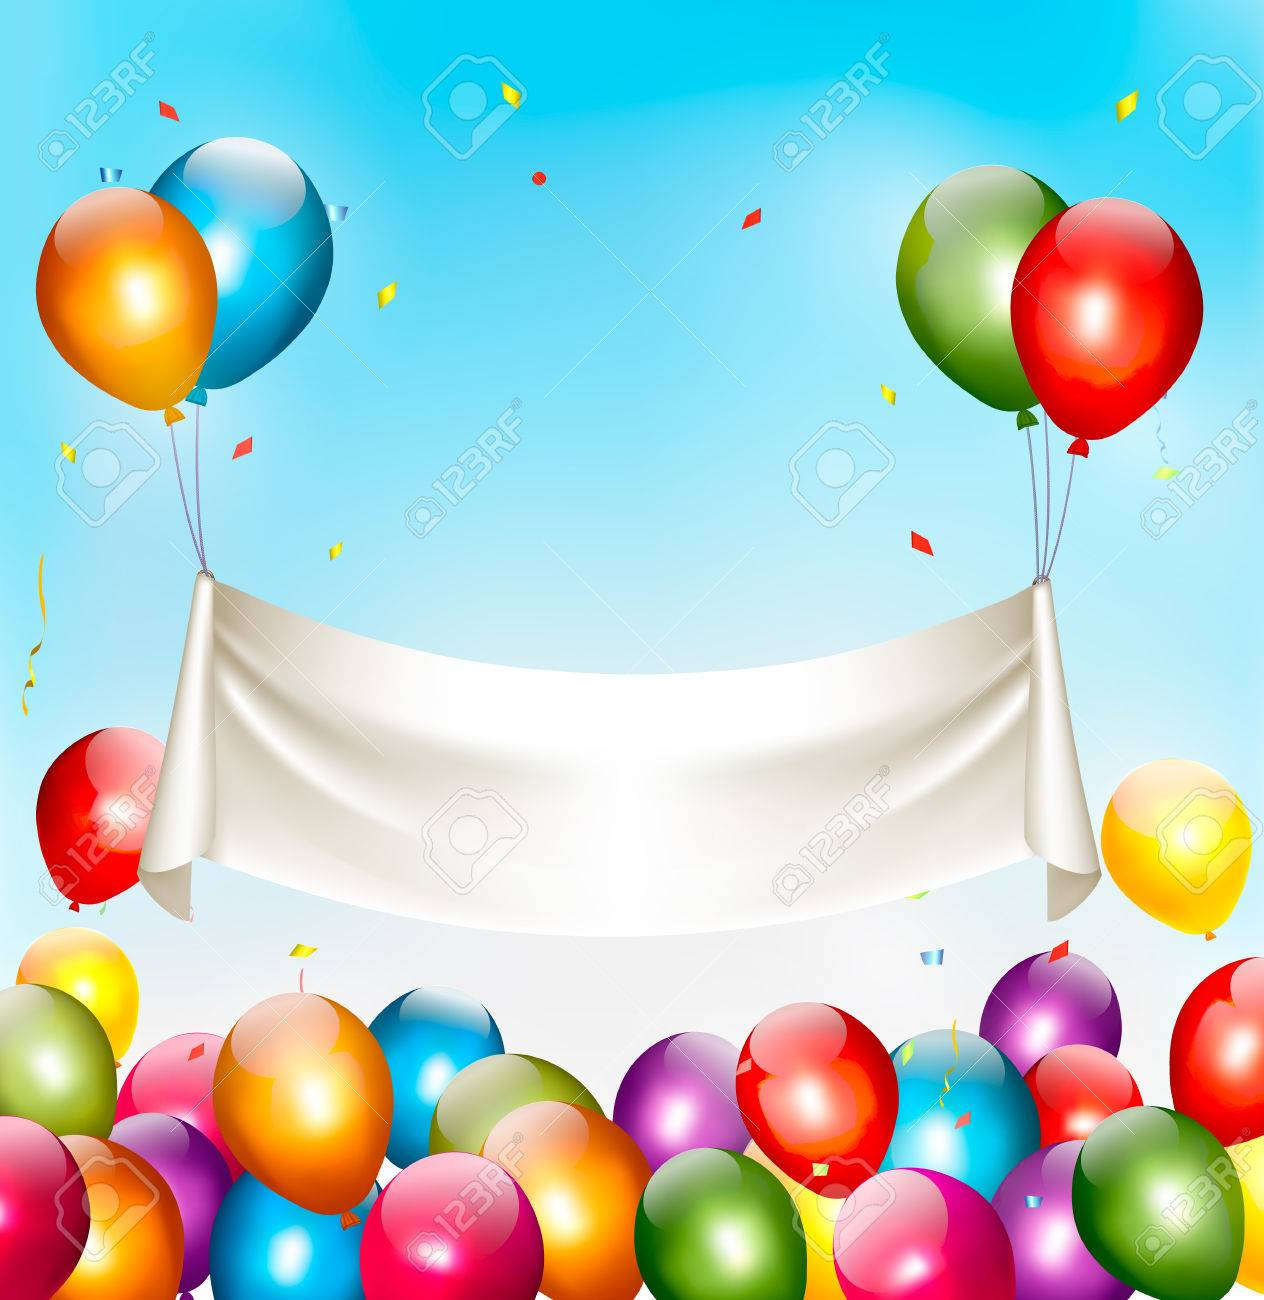 birthday banner images ; 41070216-holiday-birthday-banner-with-colorful-balloons-and-confetti-vector